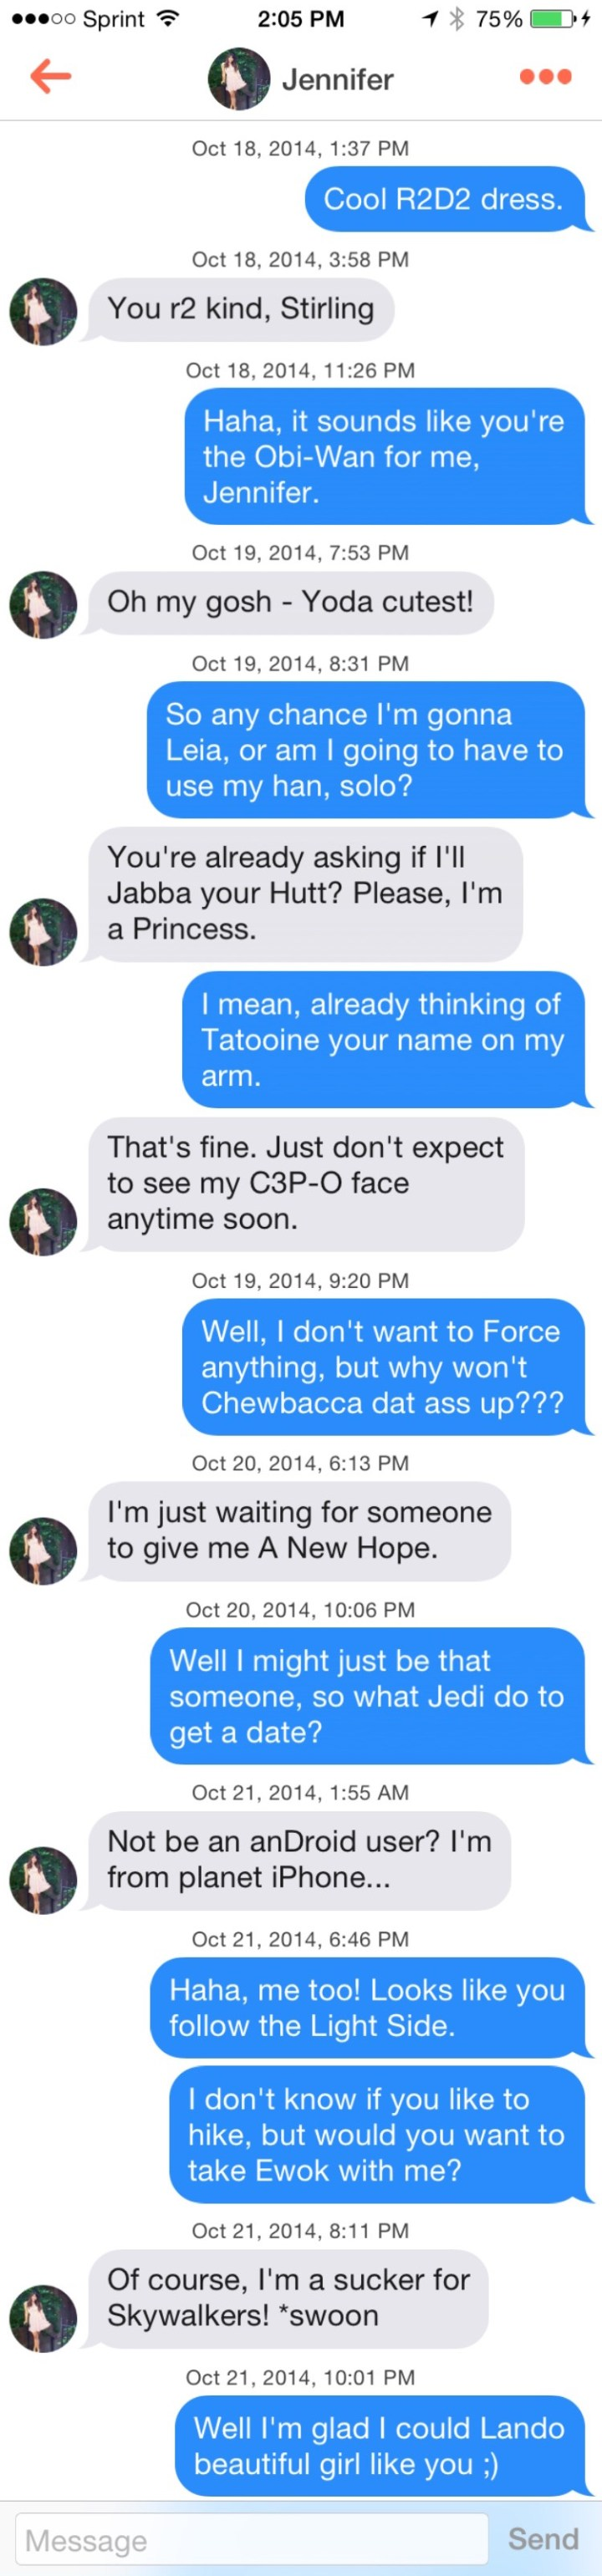 halloween pick up lines tinder | wallsviews.co